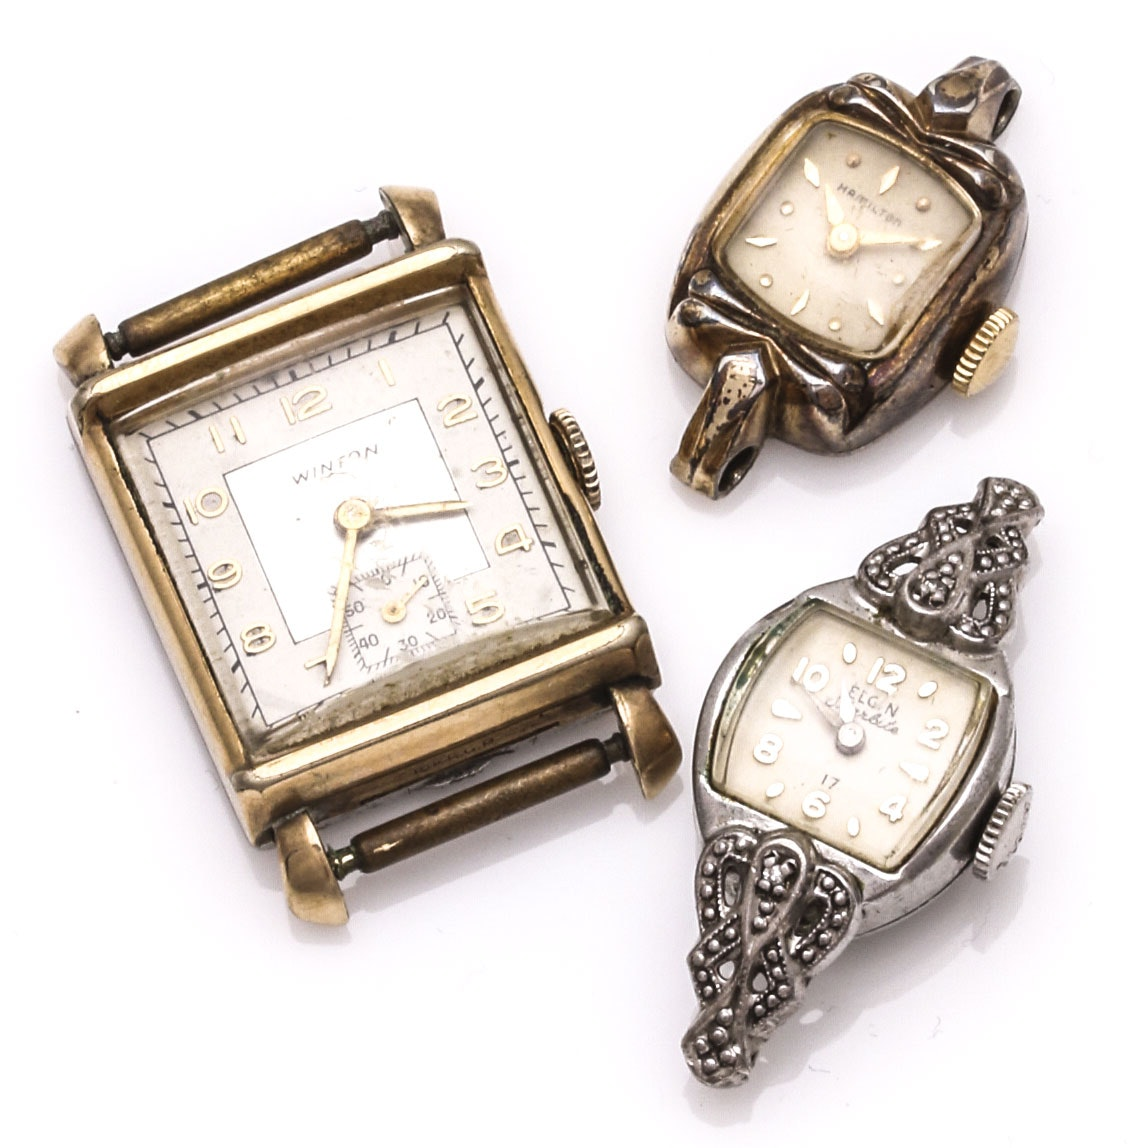 Three Women's Wristwatches and Wristwatch Cases